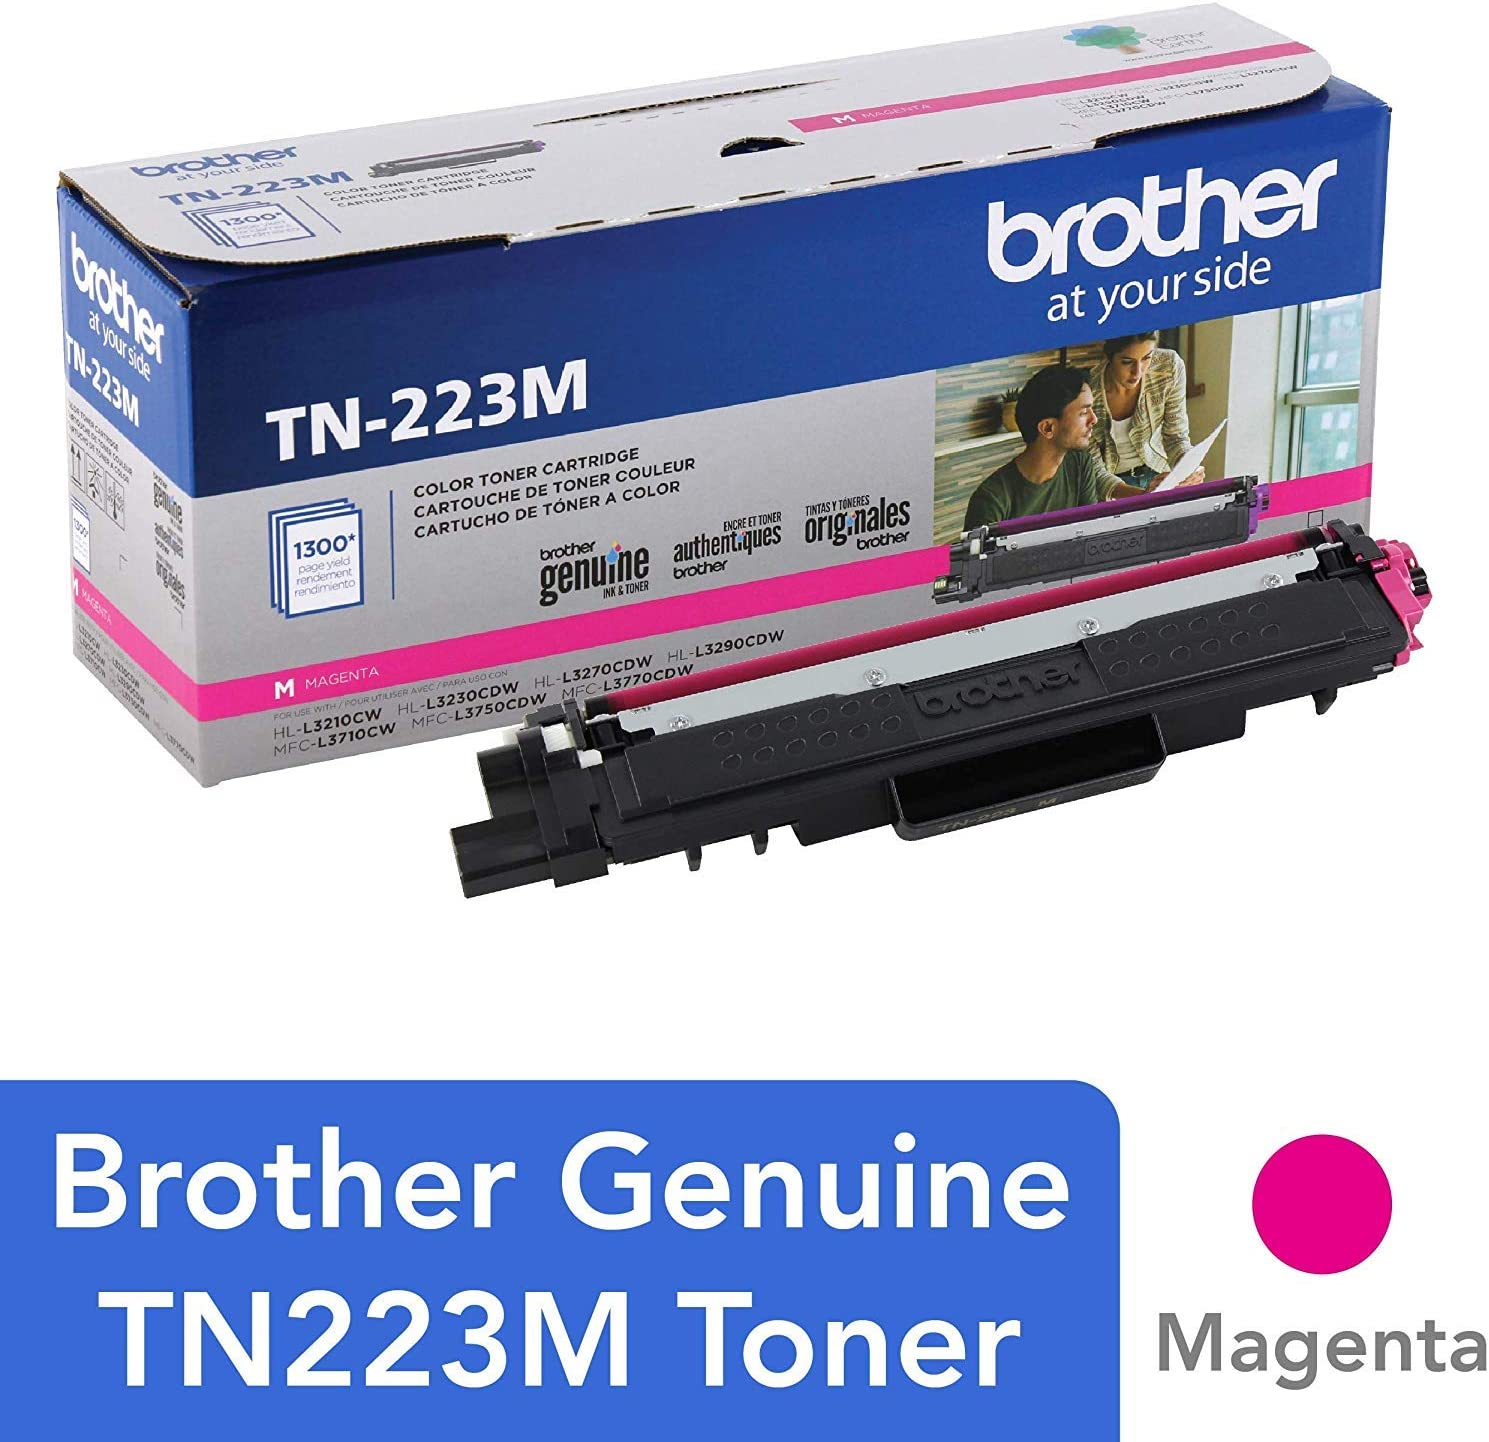 Brother Genuine TN223M, Standard Yield Toner Cartridge,Replacement Magenta Toner, Page Yield Up to 1,300 Pages, TN223, Amazon Dash Replenishment Cartridge